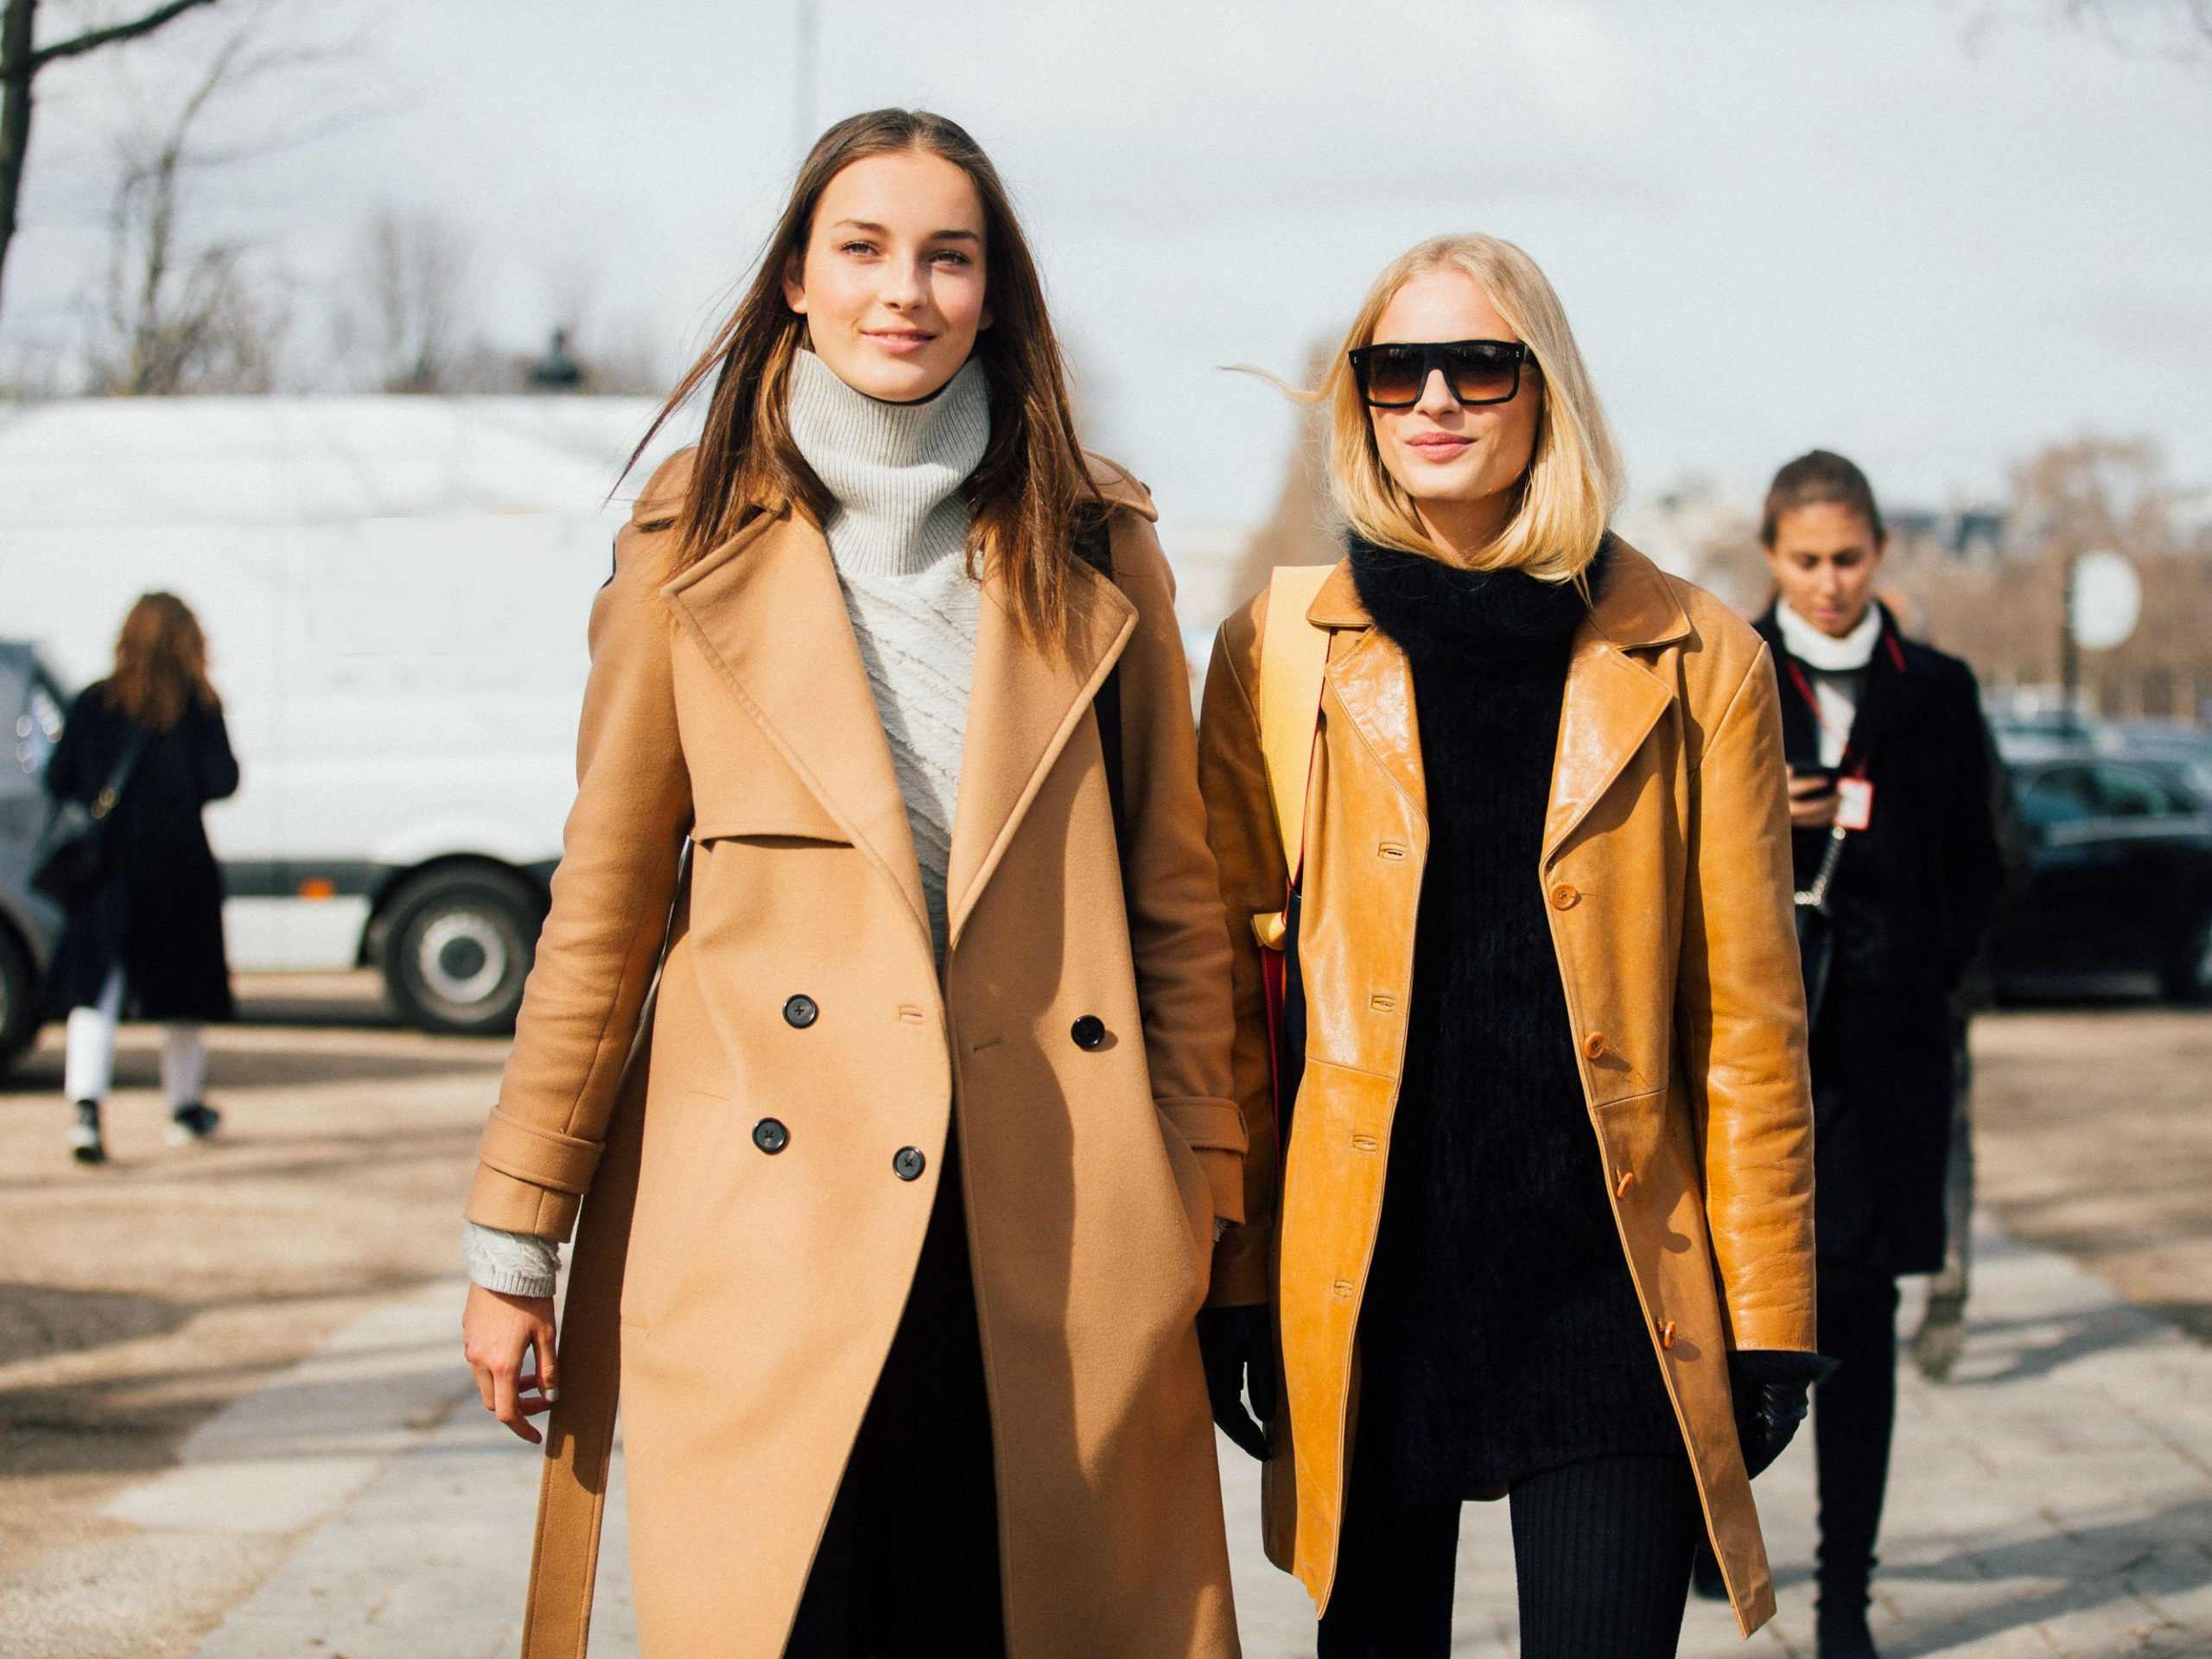 Camel-colored coats go really well with fall